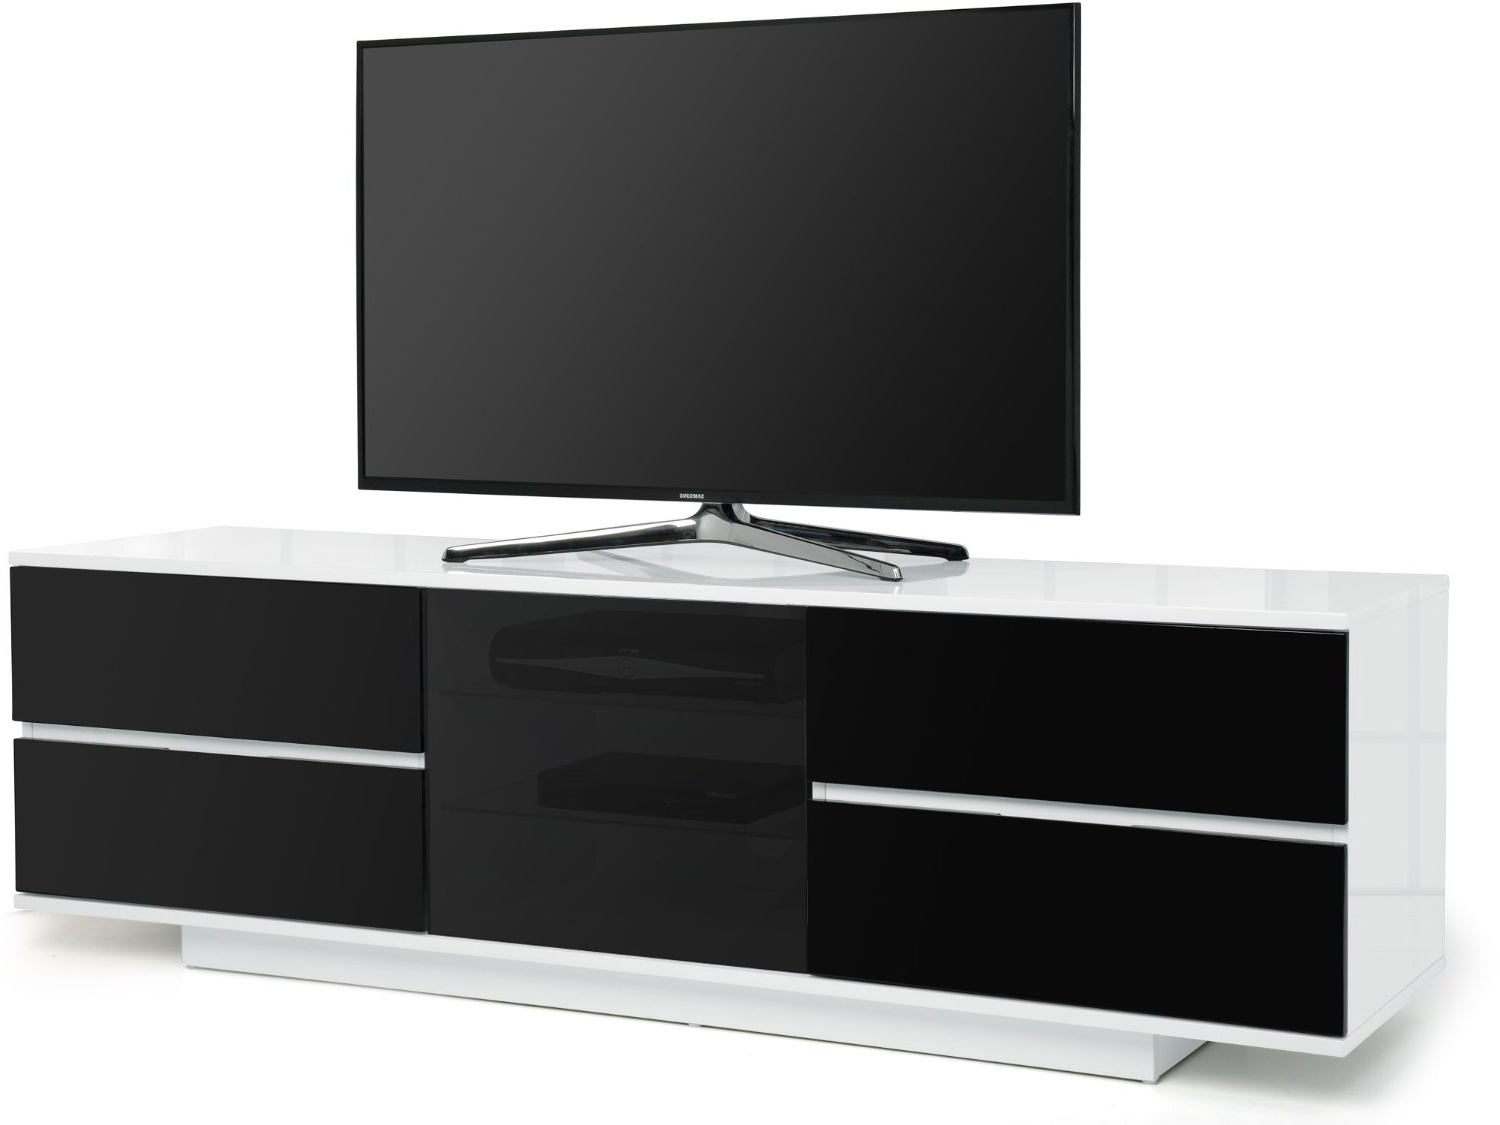 Preferred Centurion Supports Avitus Ultra White With Black Drawers Beam Thru With Regard To Beam Thru Tv Cabinets (View 15 of 20)